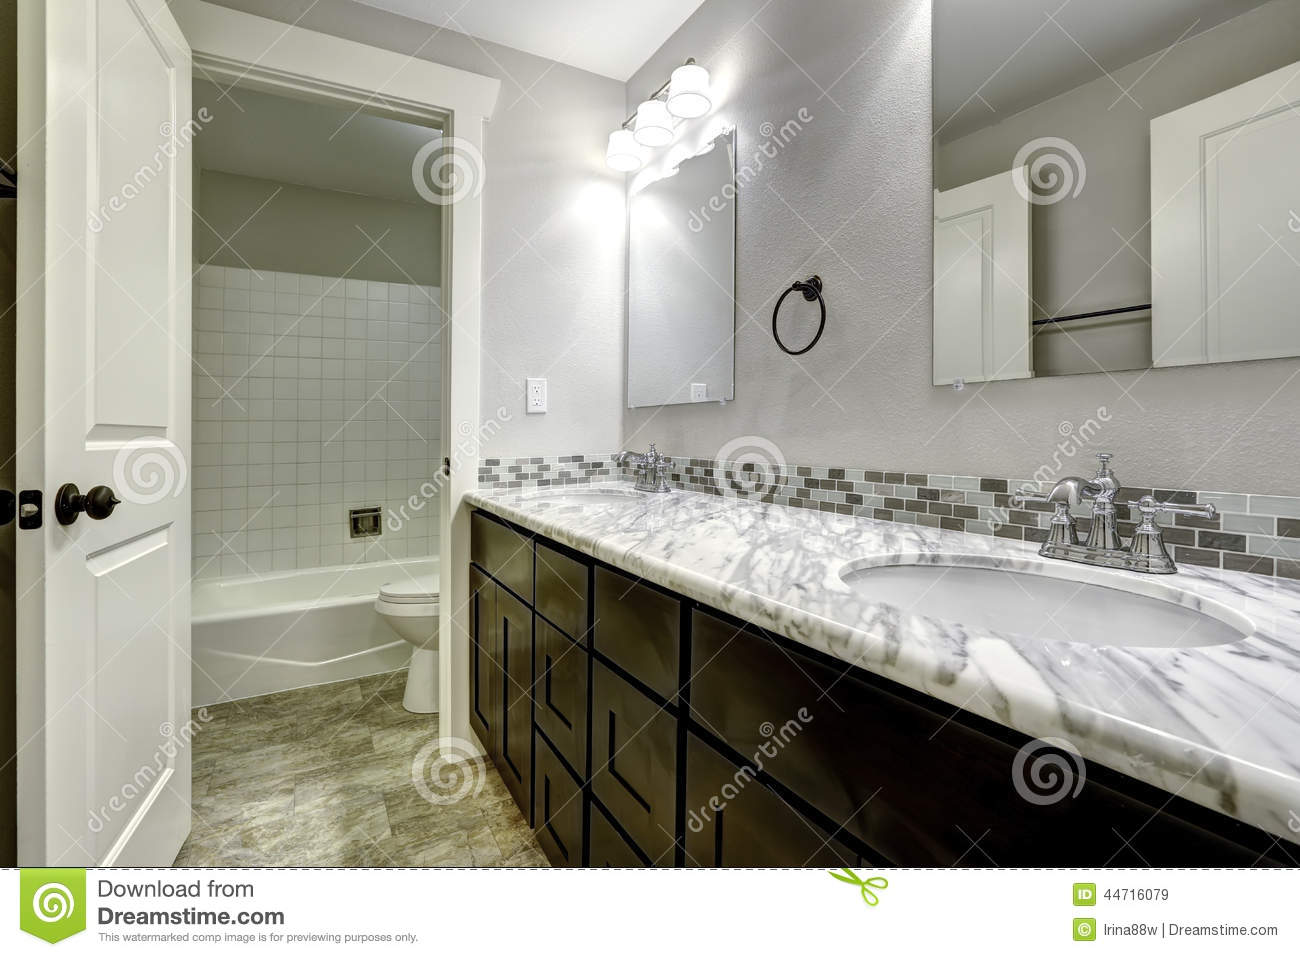 bathroom vanity cabinet with white granite top stock image - image